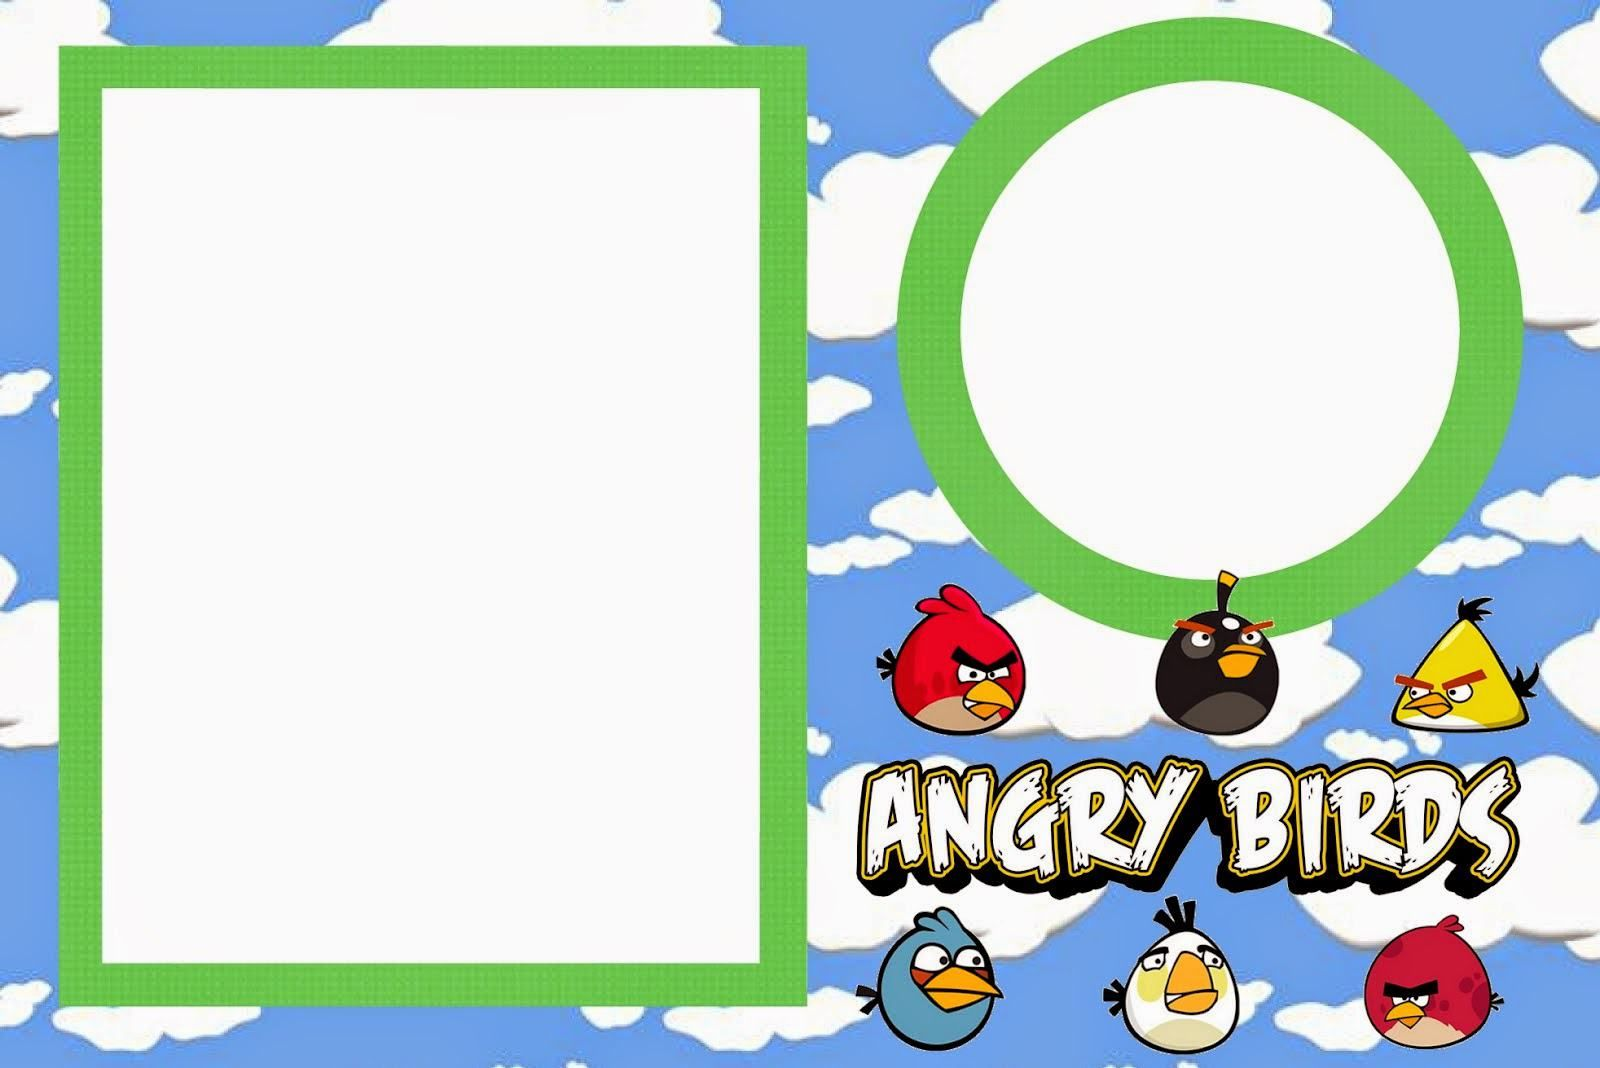 Angry Birds Invitations : Angry Birds Photo Invitations - Superb ...